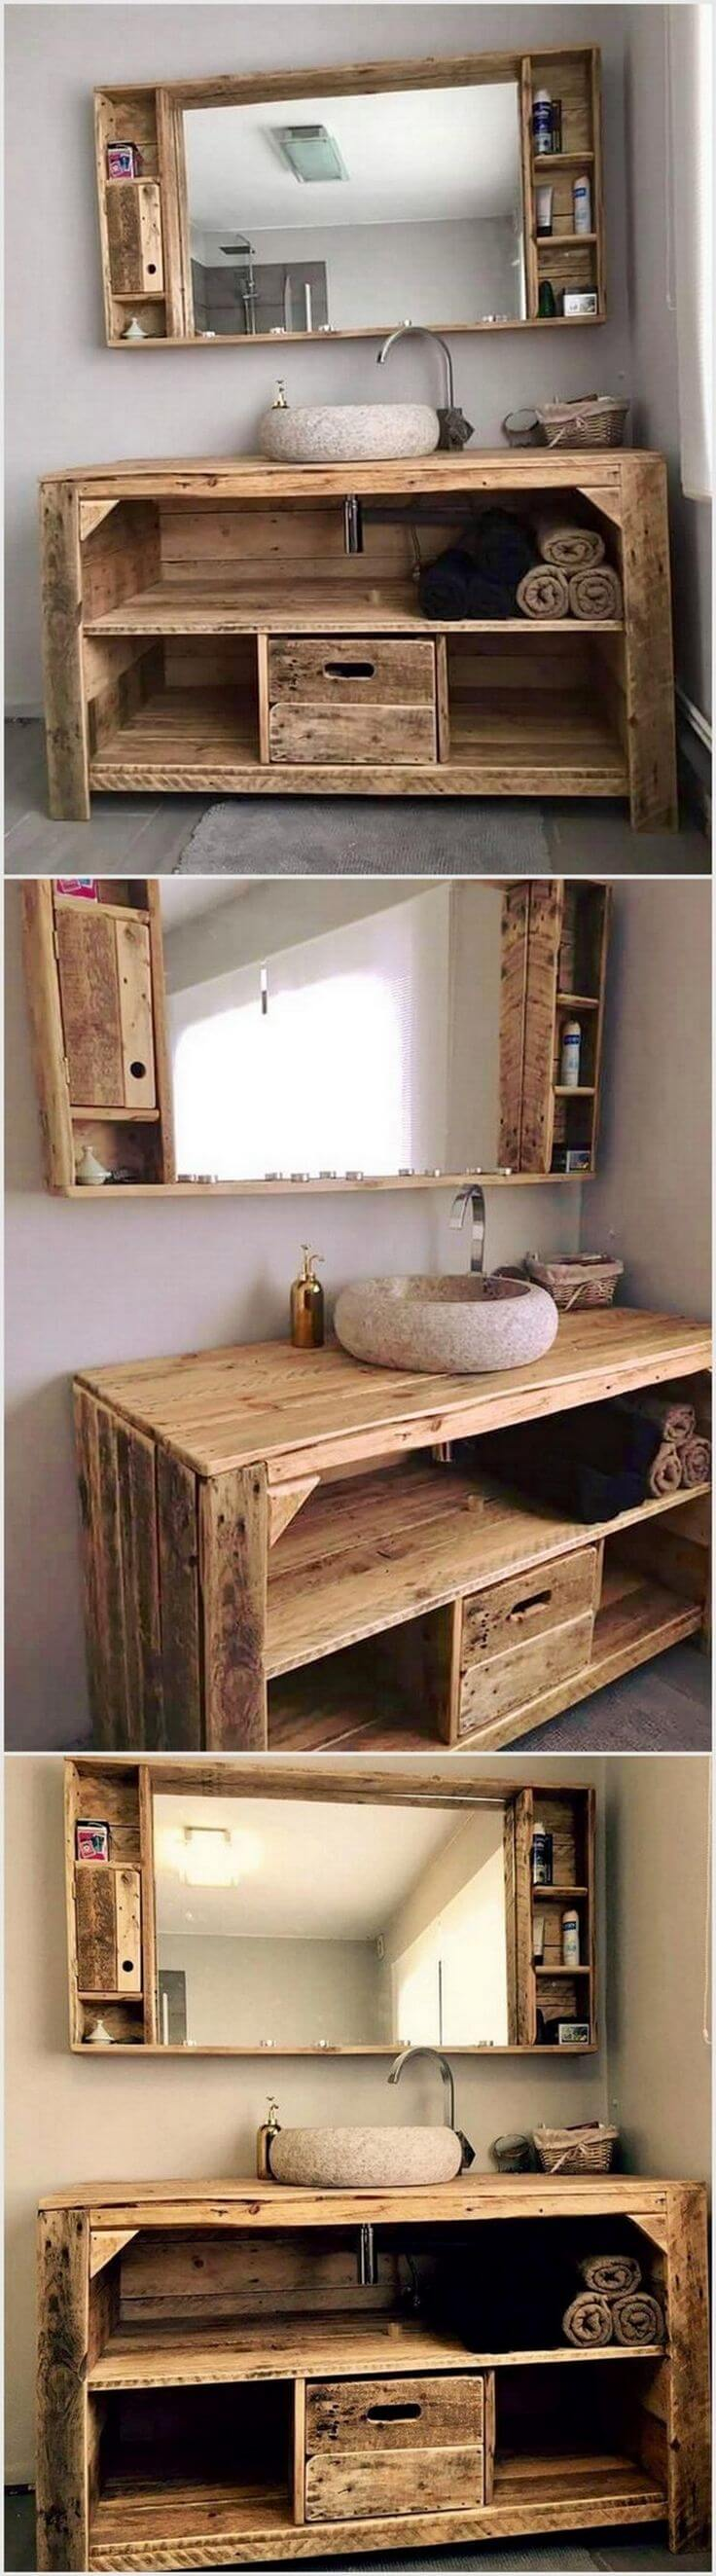 Multi Purpose DIY Pallet Project Ideas